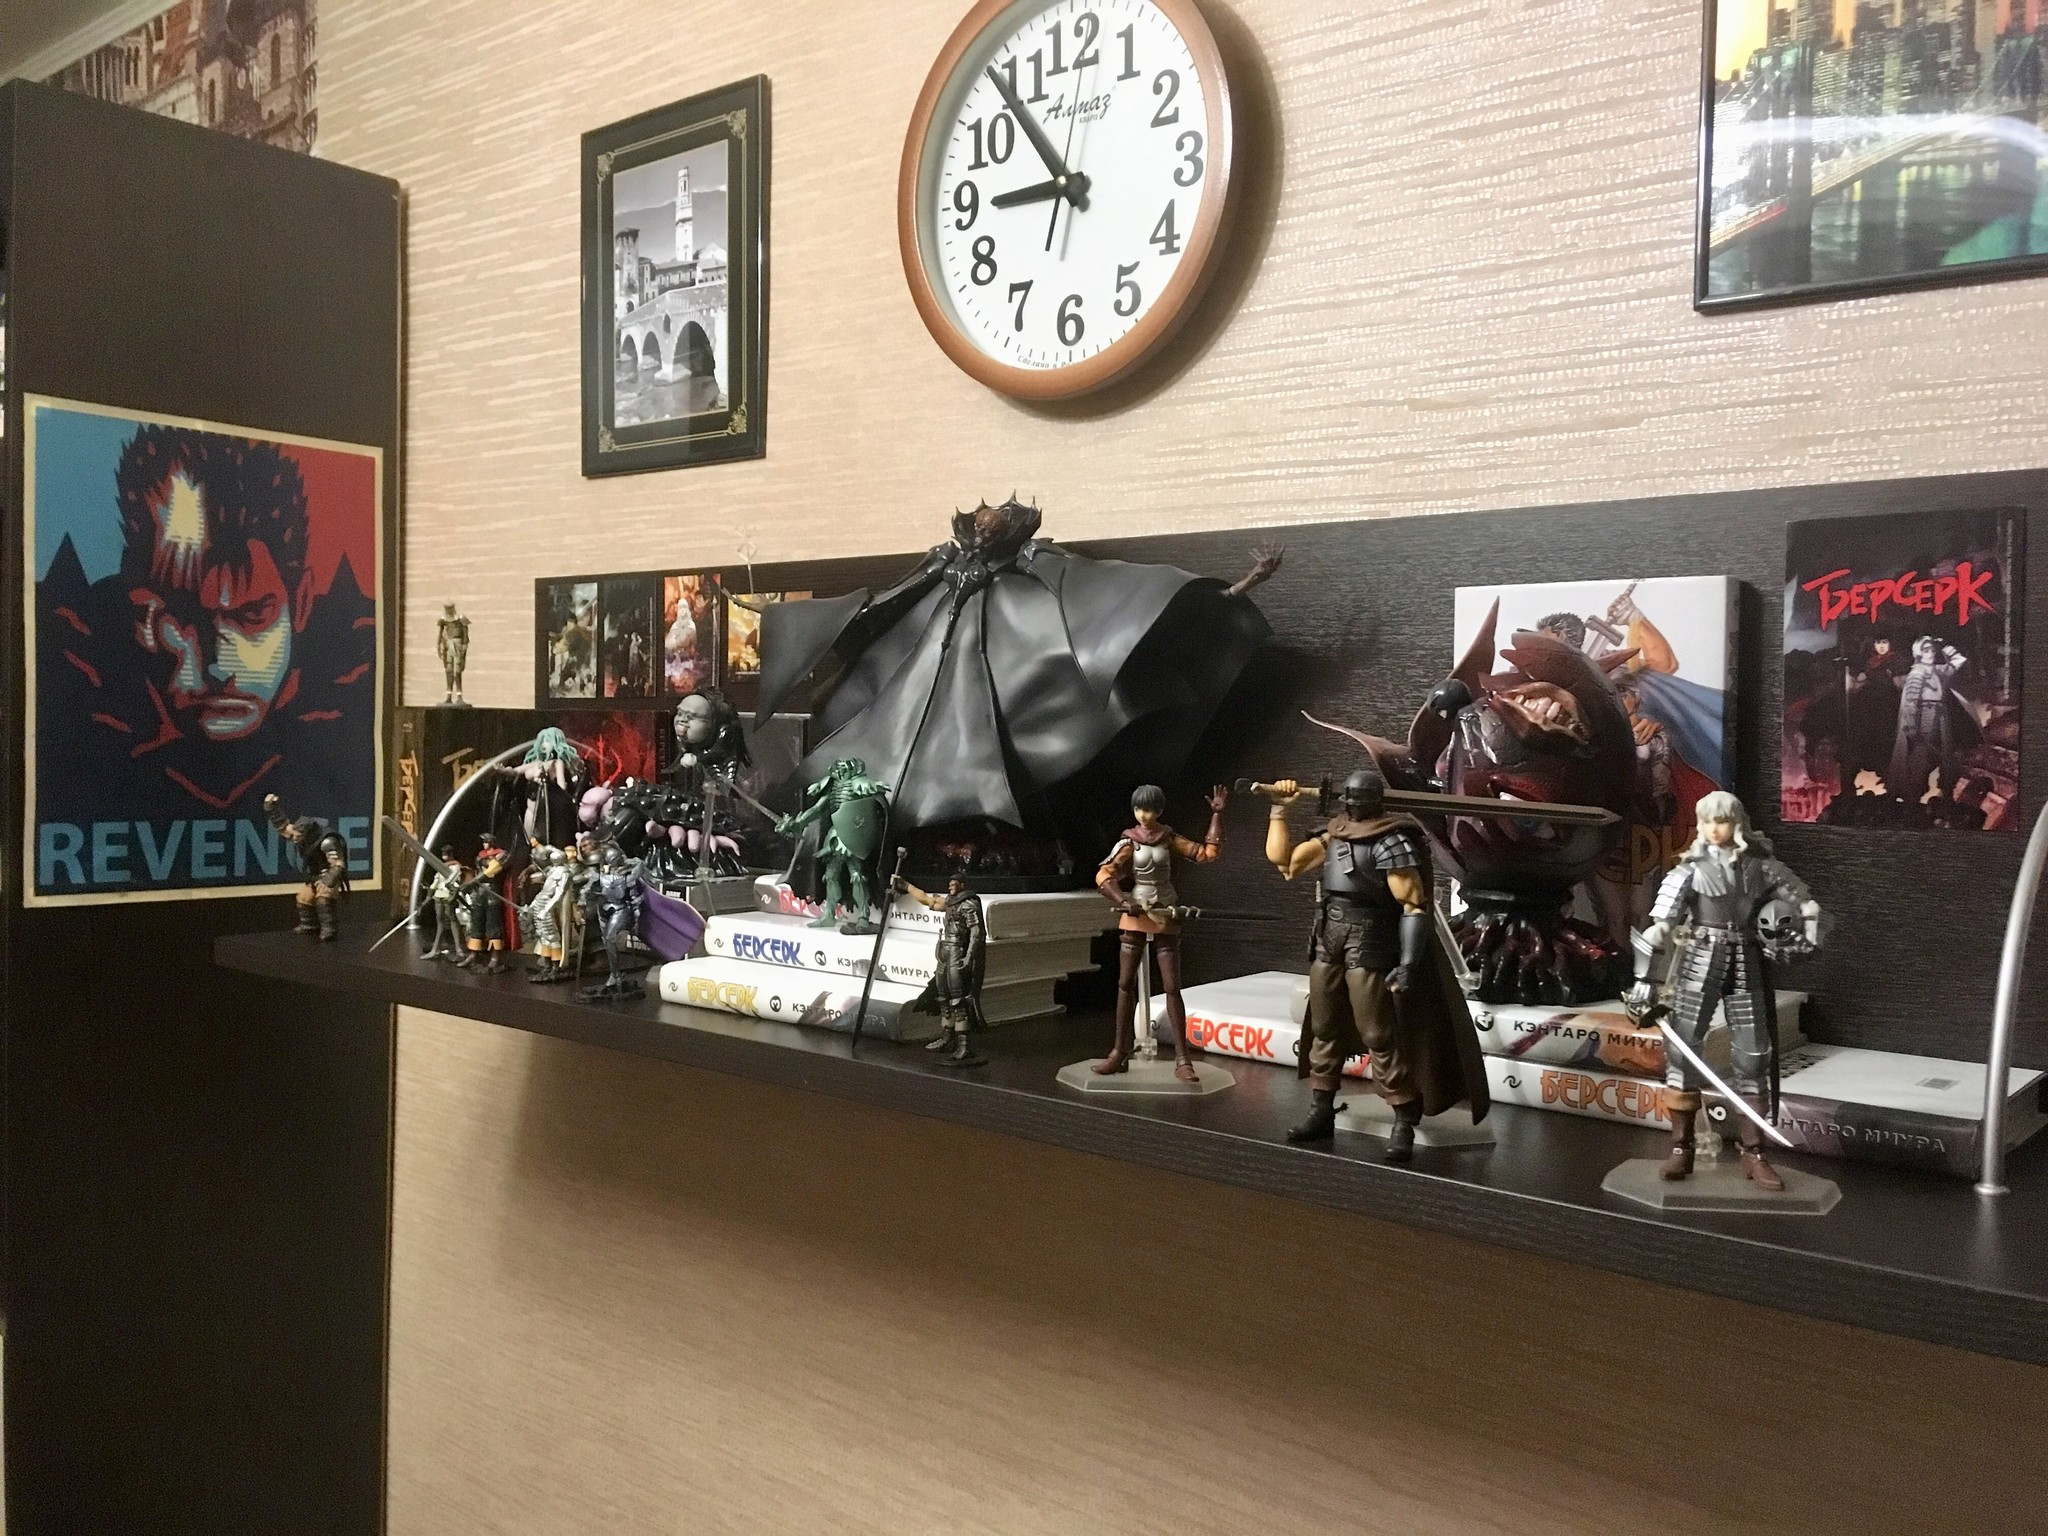 figma guts berserk griffith max_factory freeing good_smile_company void slan art_of_war asai_(apsy)_masaki hakusensha casca wyald femto conrad ubik judeau silat miura_kentarou pippin corkus rickert figfix pinpoint dokuro_no_kishi mushibuchi